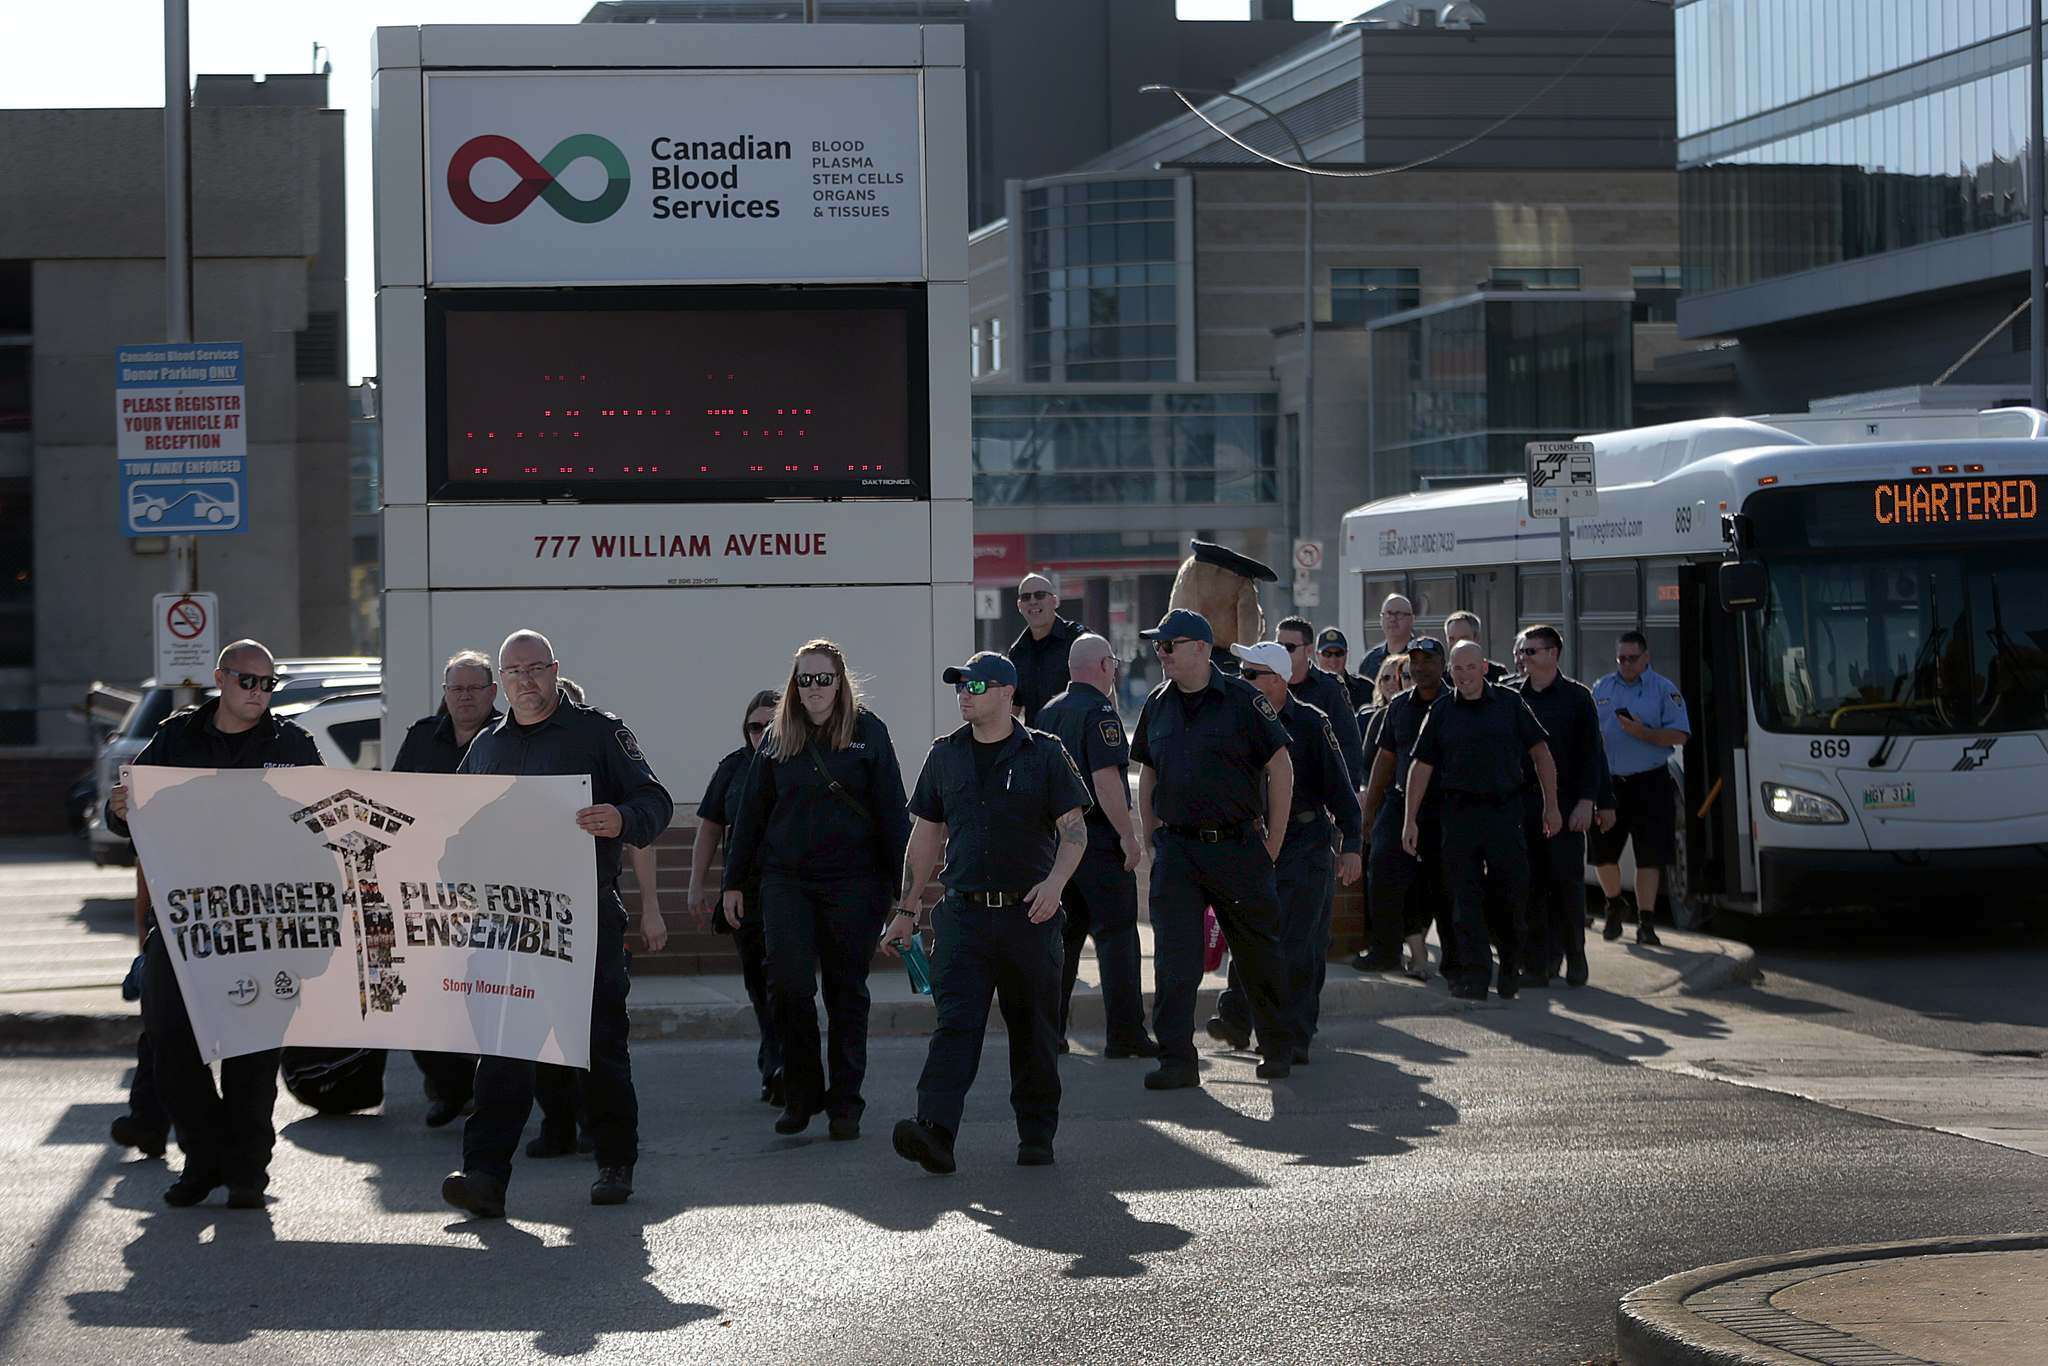 PHIL HOSSACK / WINNIPEG FREE PRESS</p><p>Dozens of Stony Mountain Institution Guards showed up Monday at Canadian Blood Services to offer a mass donation and to highlight issues affecting federal prison guards in Canada ahead of the upcoming election.</p>